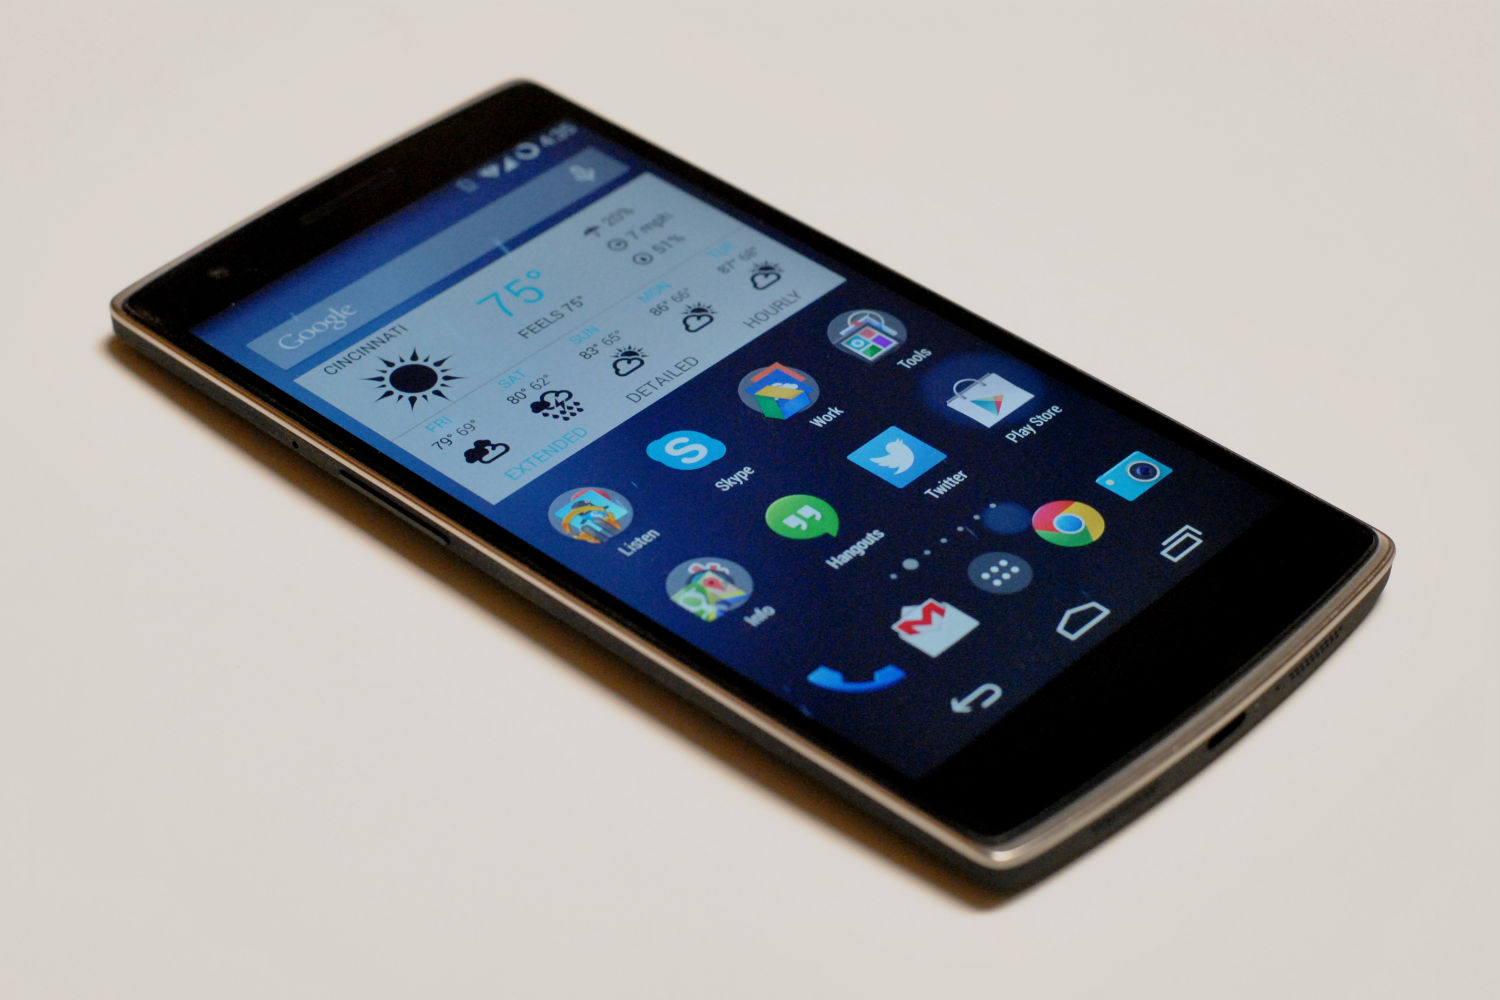 The OnePlus One smartphone features a 5.5-inch screen